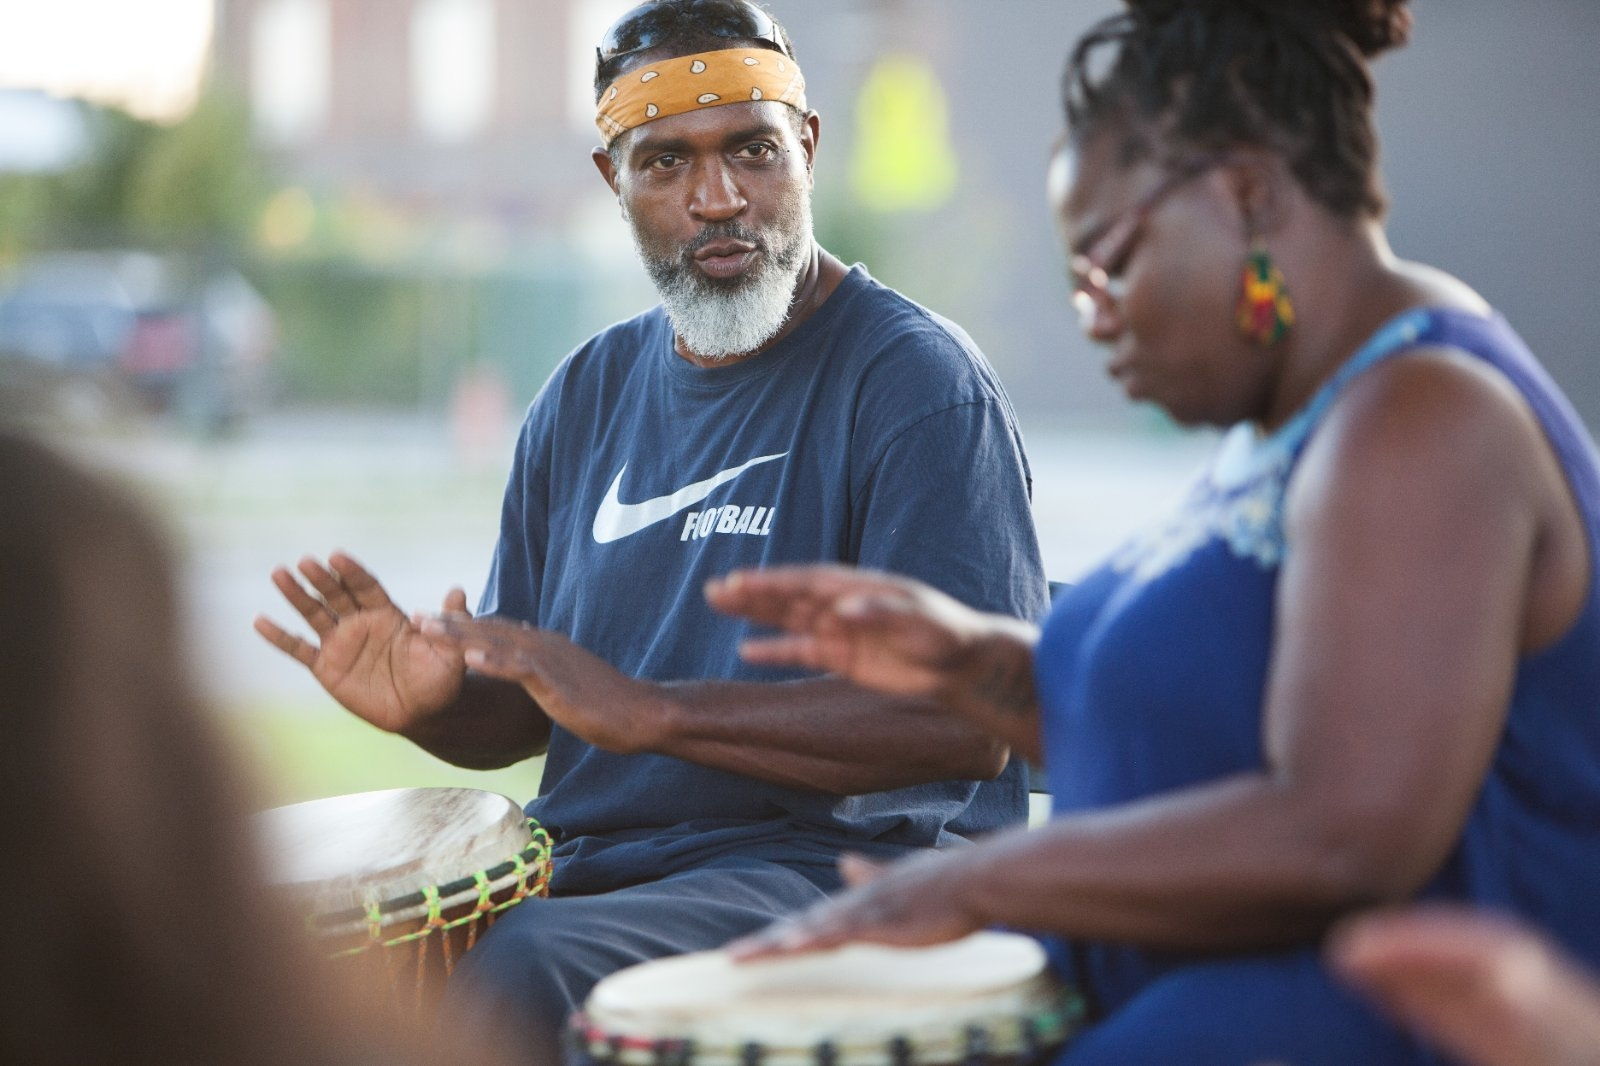 Community members play in a drum circle.